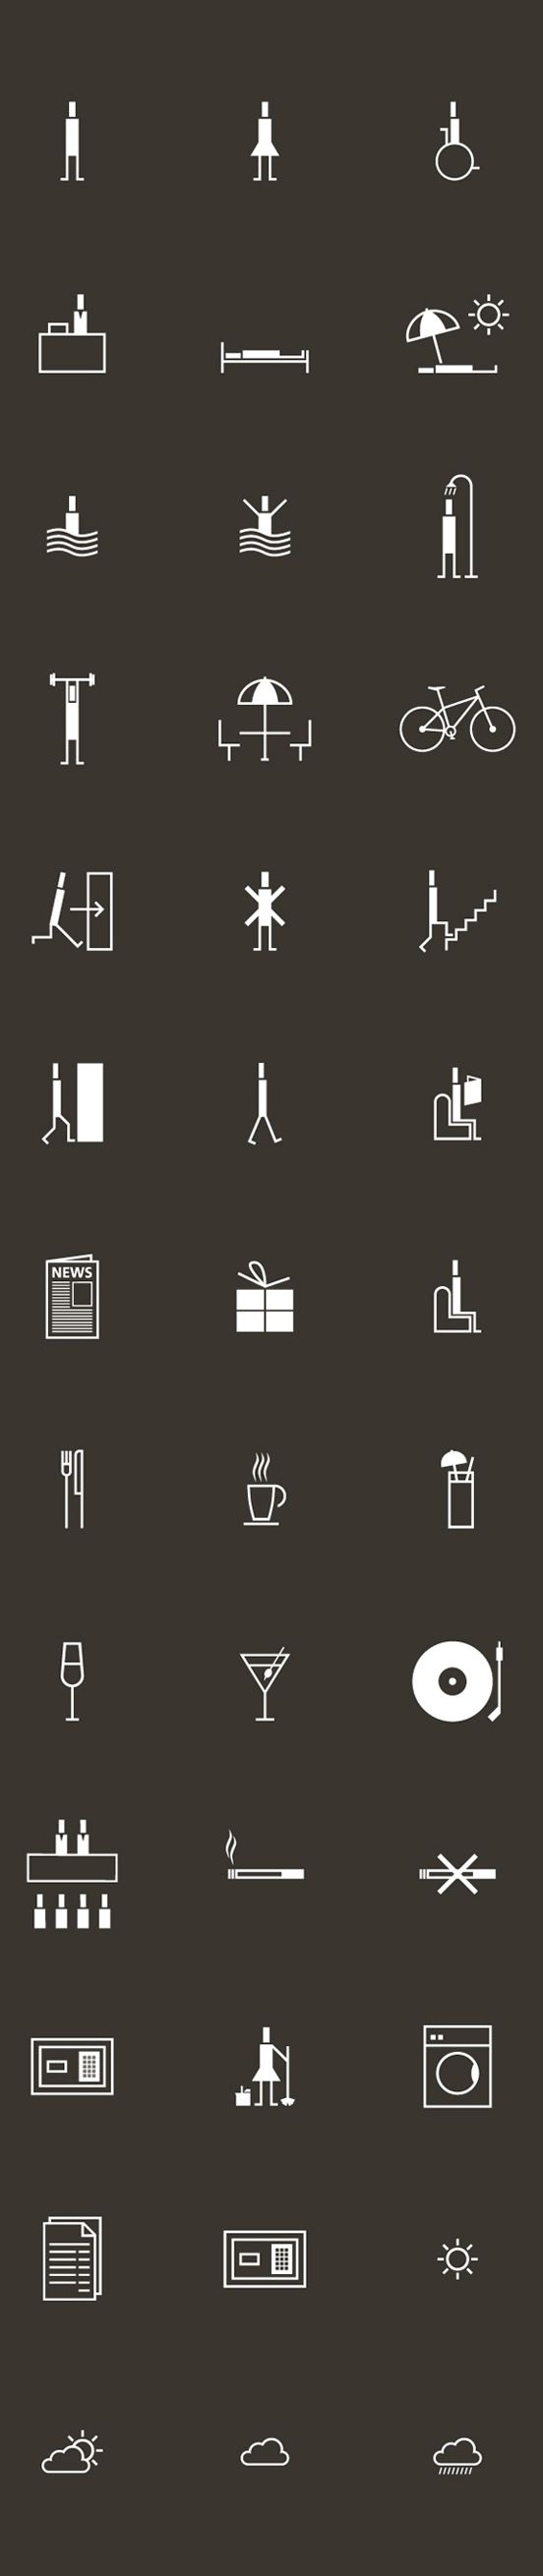 Talkative Pictograms Son Vent Pictograms [Gaizka Design & Sergi Gallent]